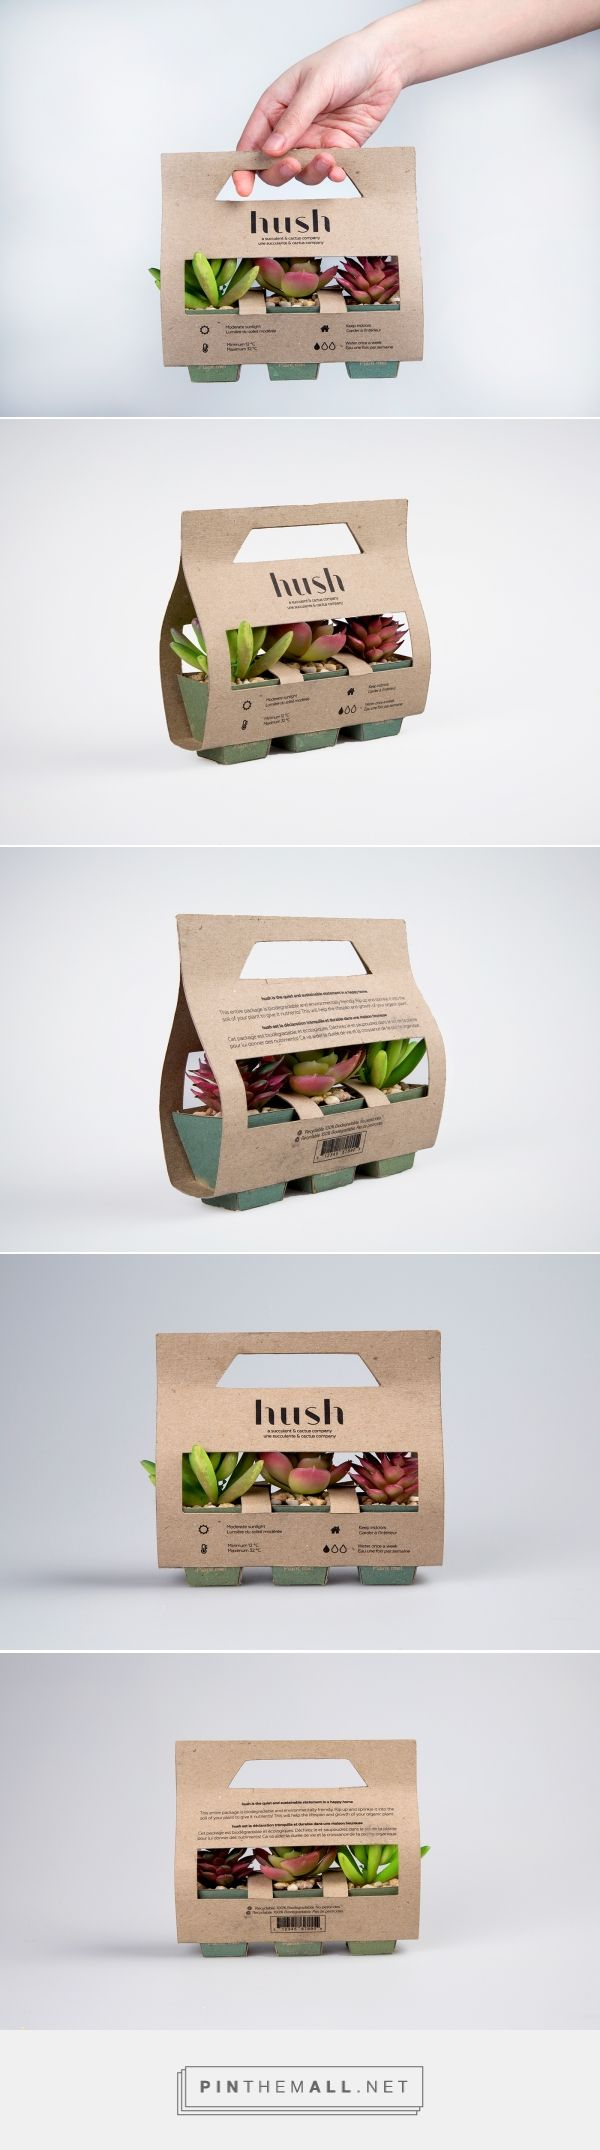 Simple, practical and beautiful packaging for succulents and cacti. Hush succulents and cacti company by Samantha Goh. Source: Behance. Pin curated by#SFields99#packaging #design #inspiration #ideas #innovation #creative #structural #product #branding #plants #succulents #cacti